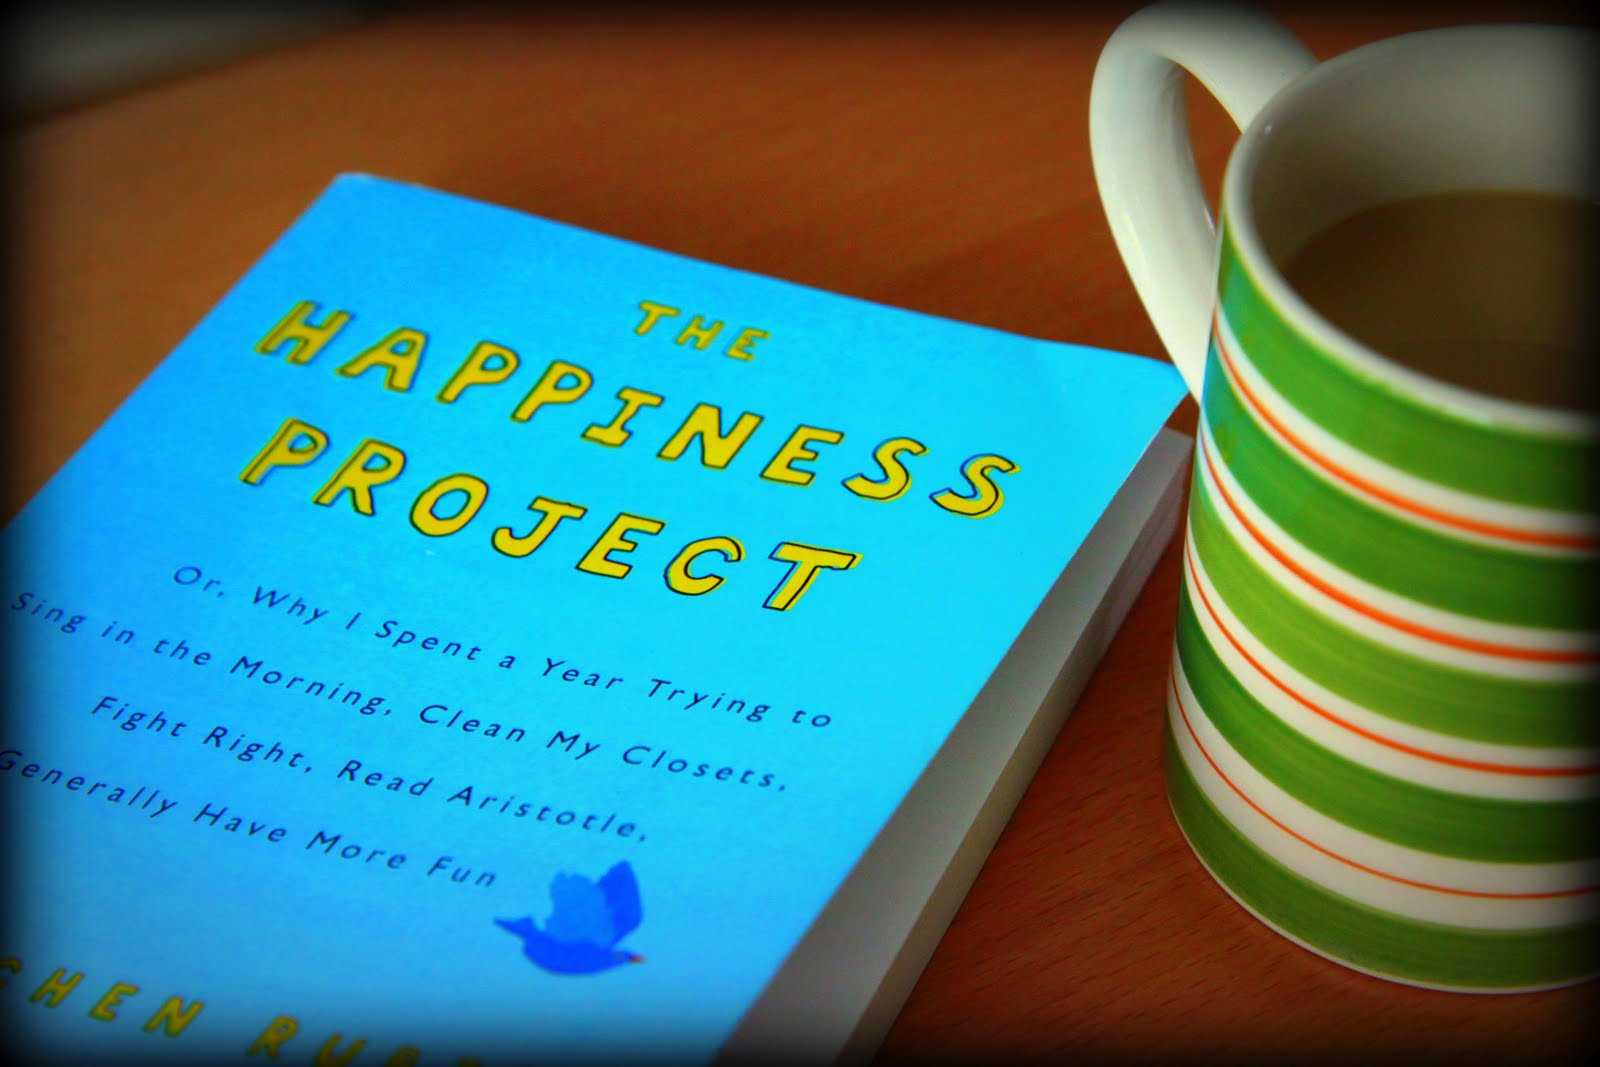 http://yoginiannie.blogspot.co.uk/2011/09/book-report-happiness-project.html